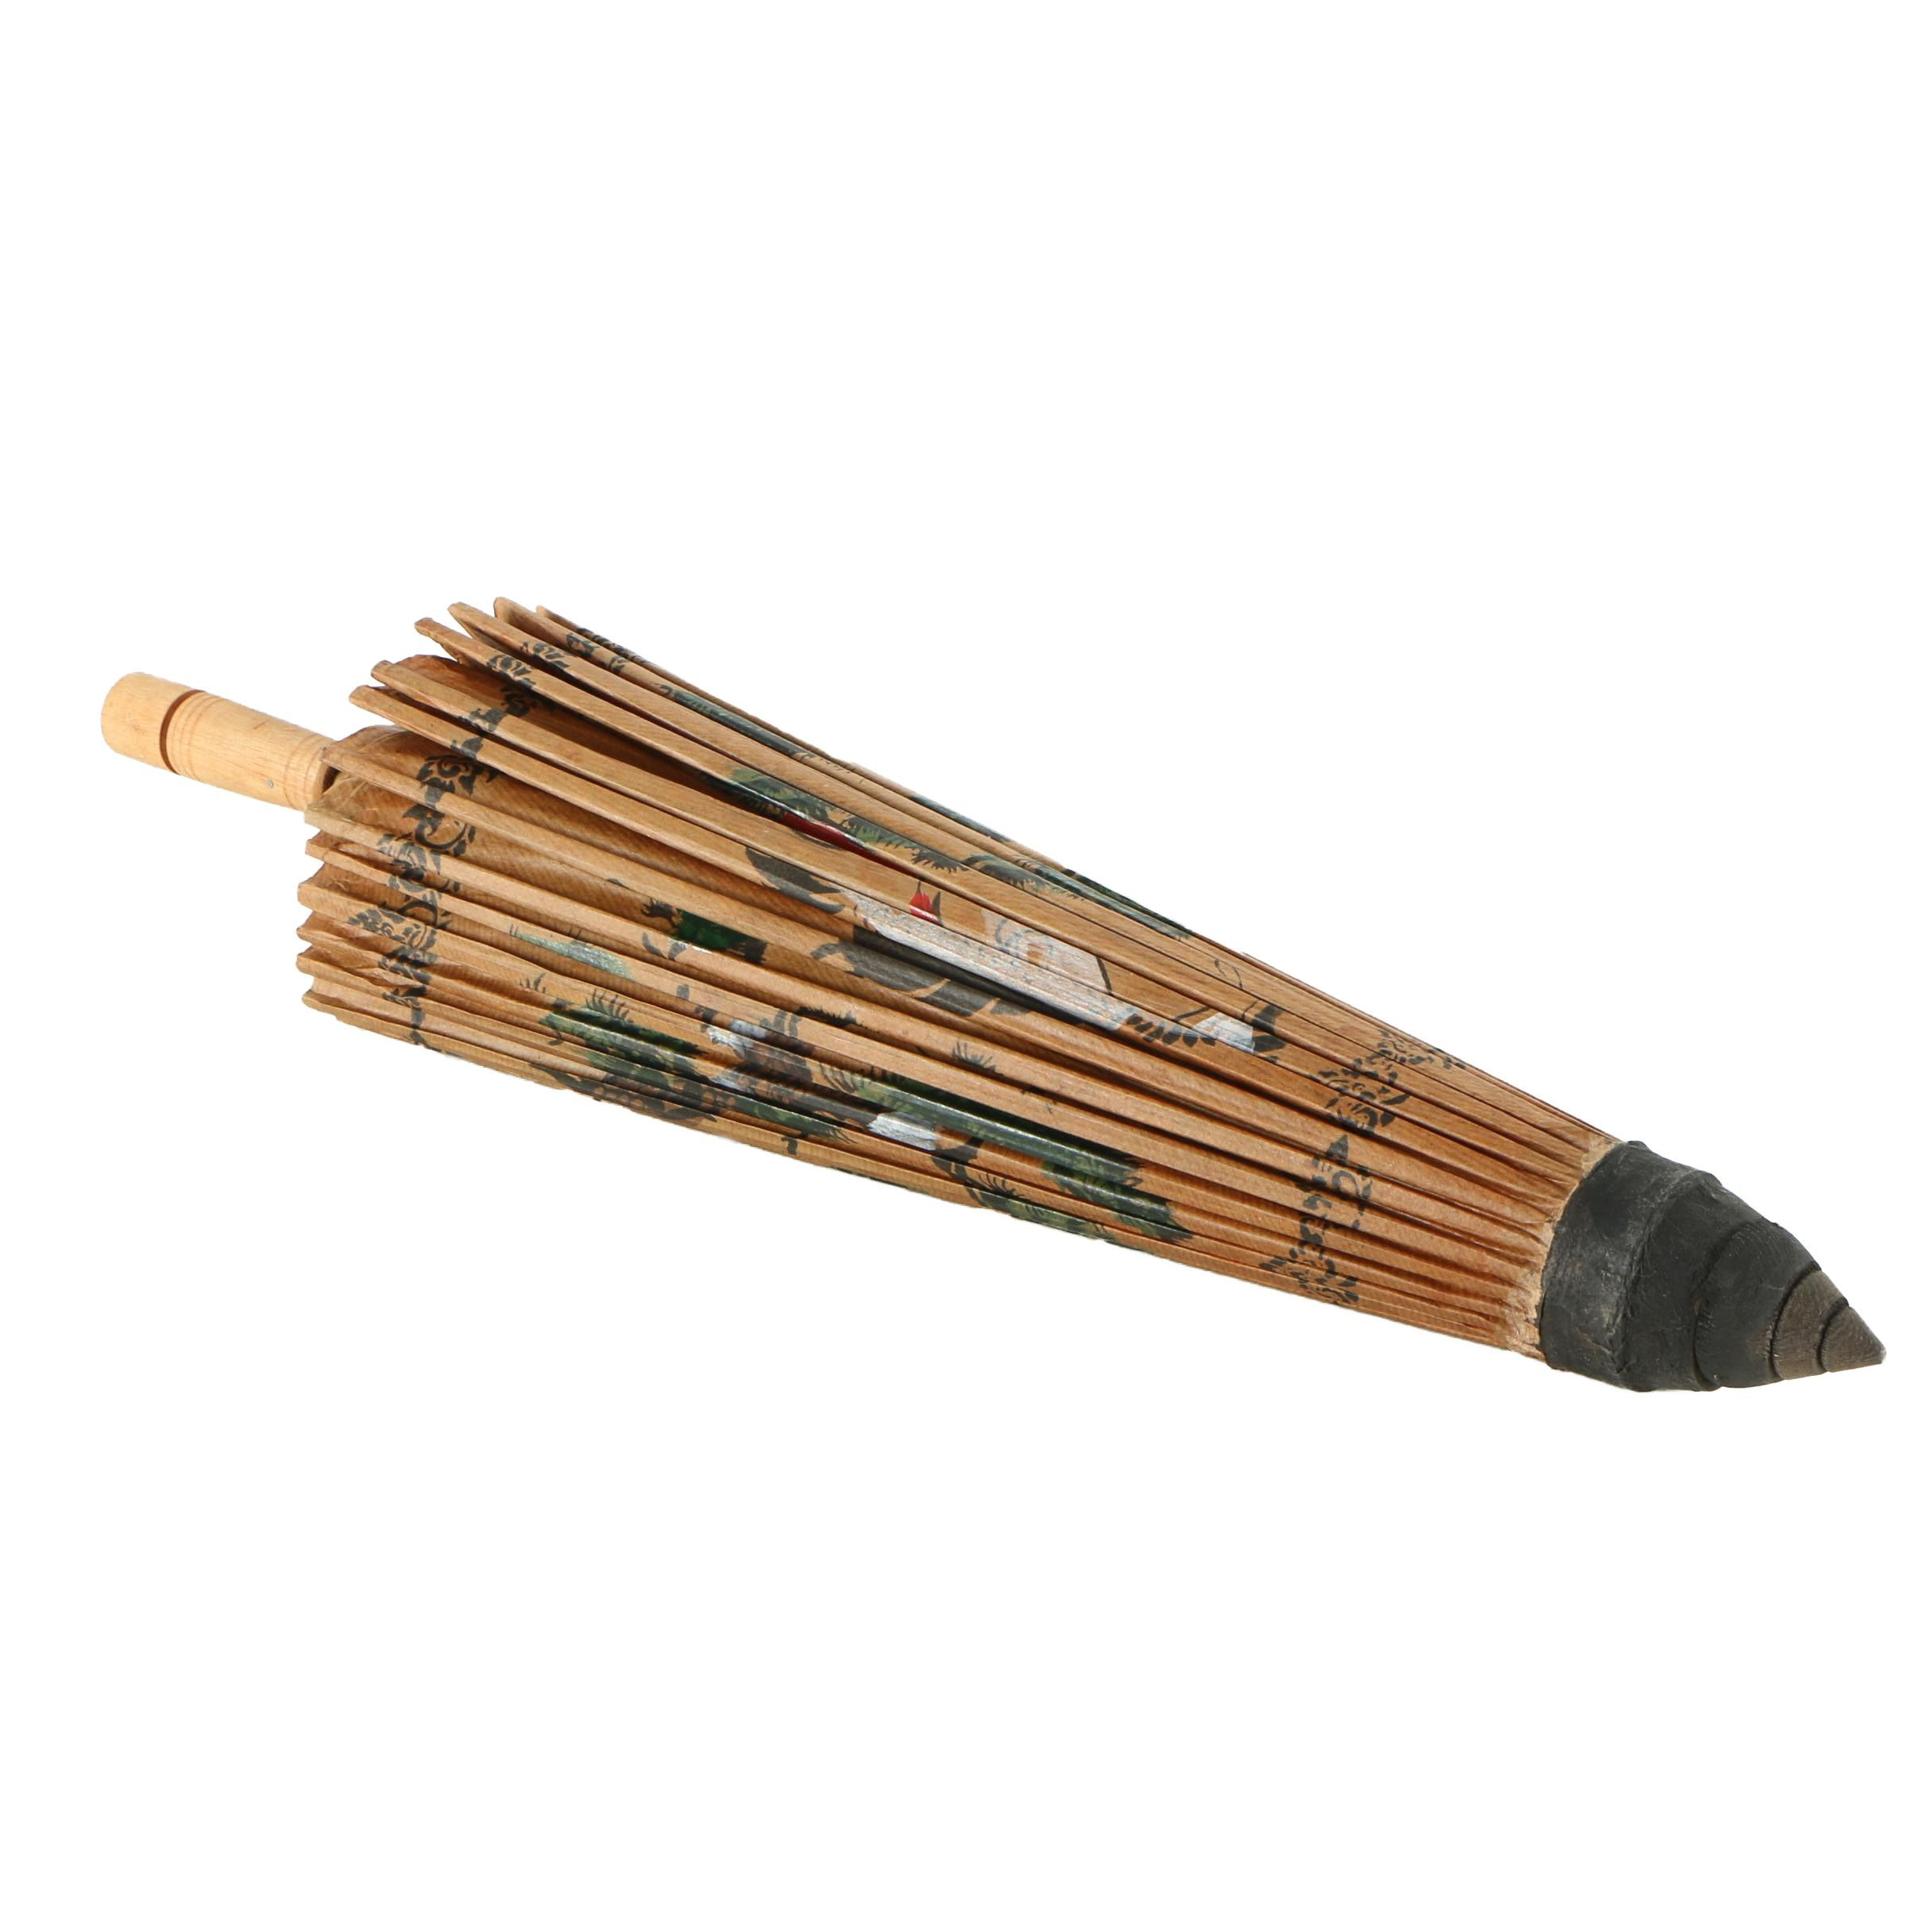 Chinese Hand-Painted Paper and Wood Umbrella